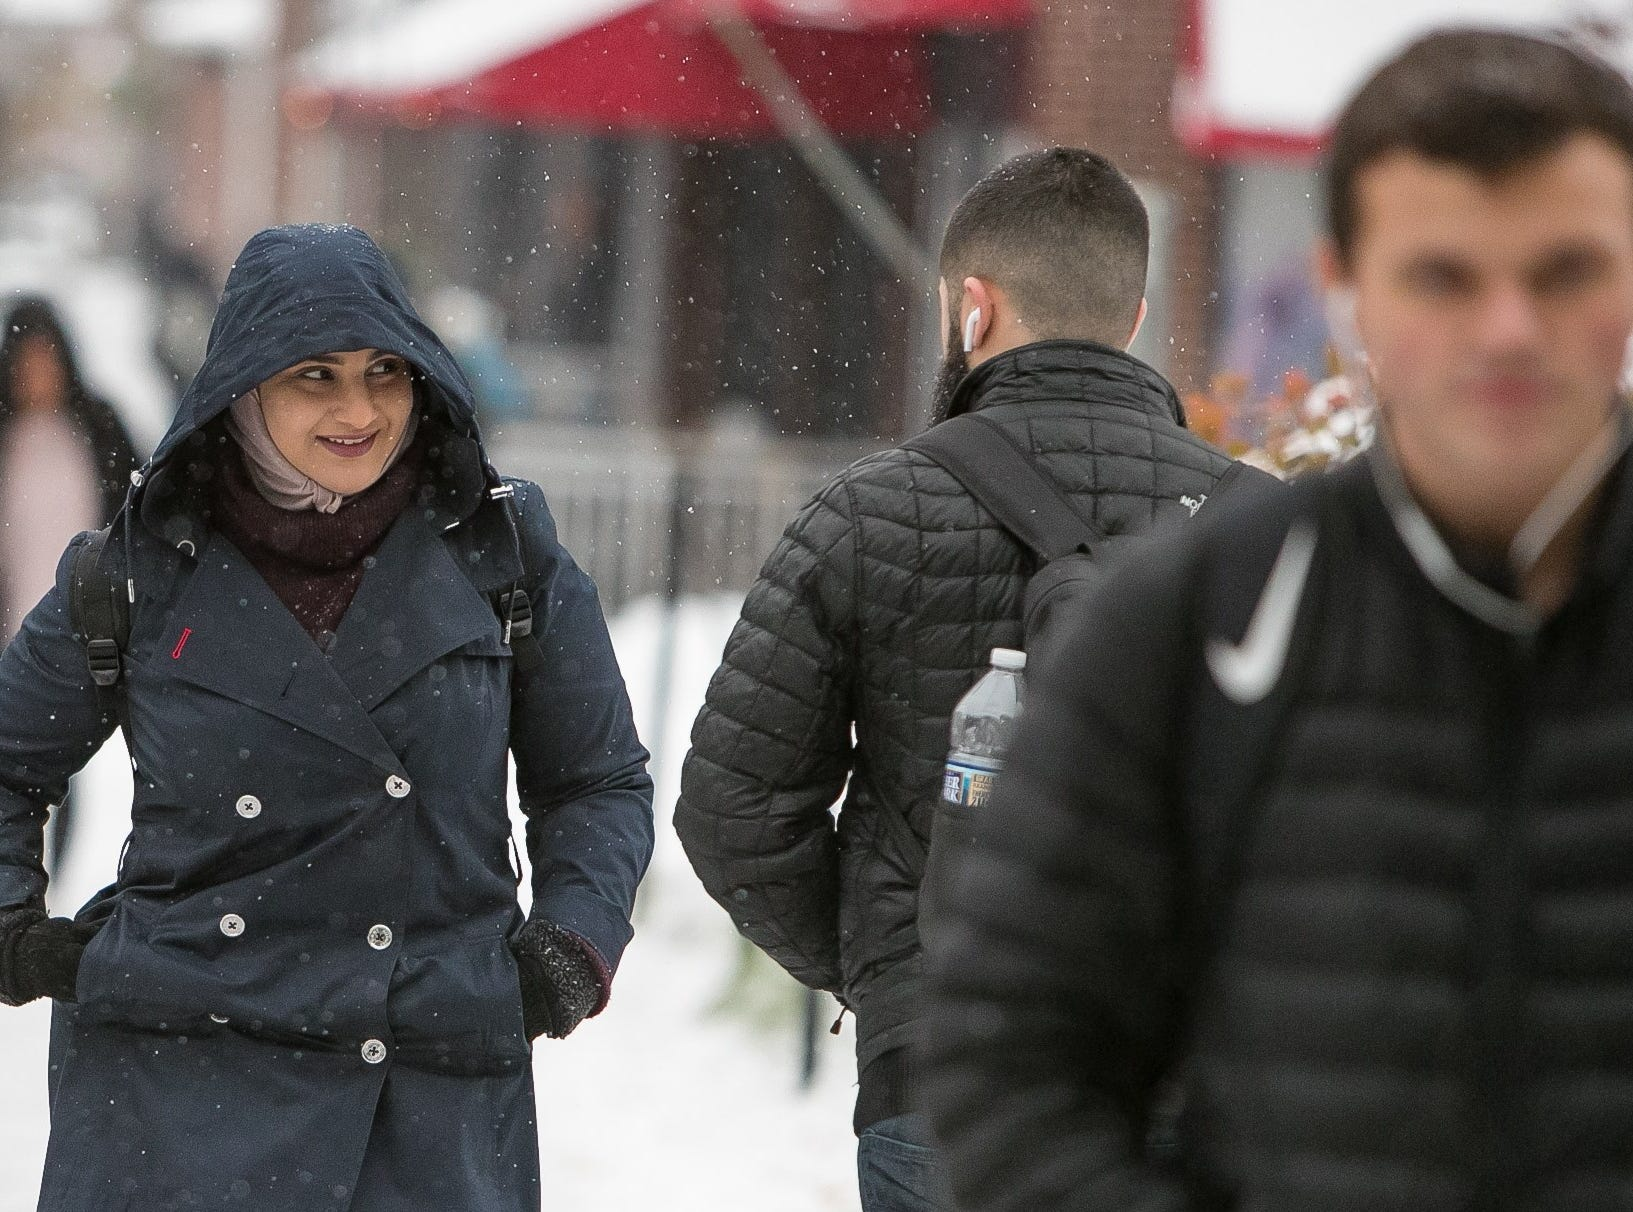 A woman walks along Main Street in Newark where classes at the University of Delaware closed at 2:30pm.